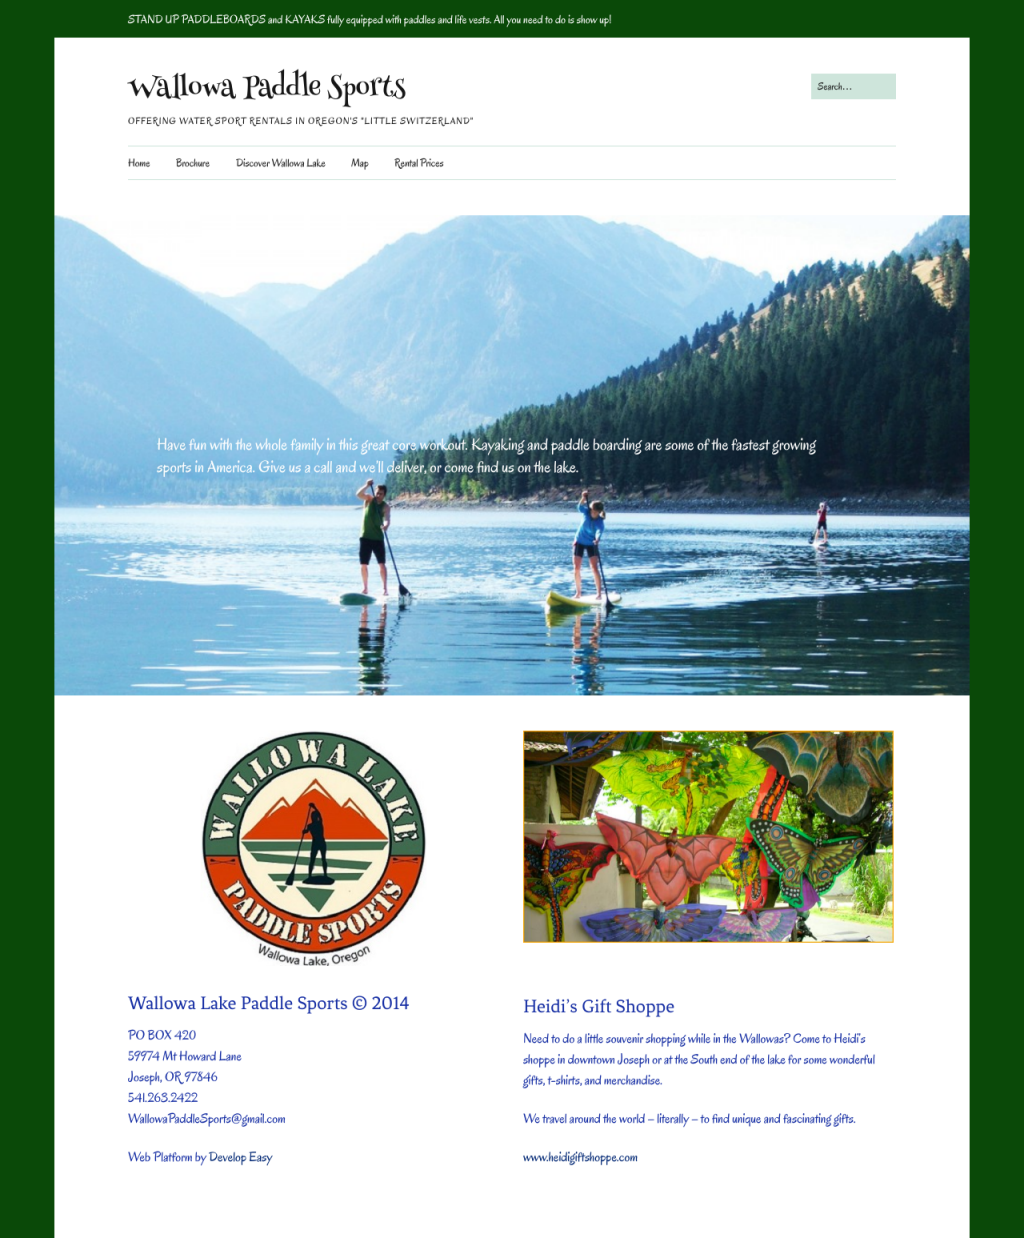 Wallowa Paddle Sports